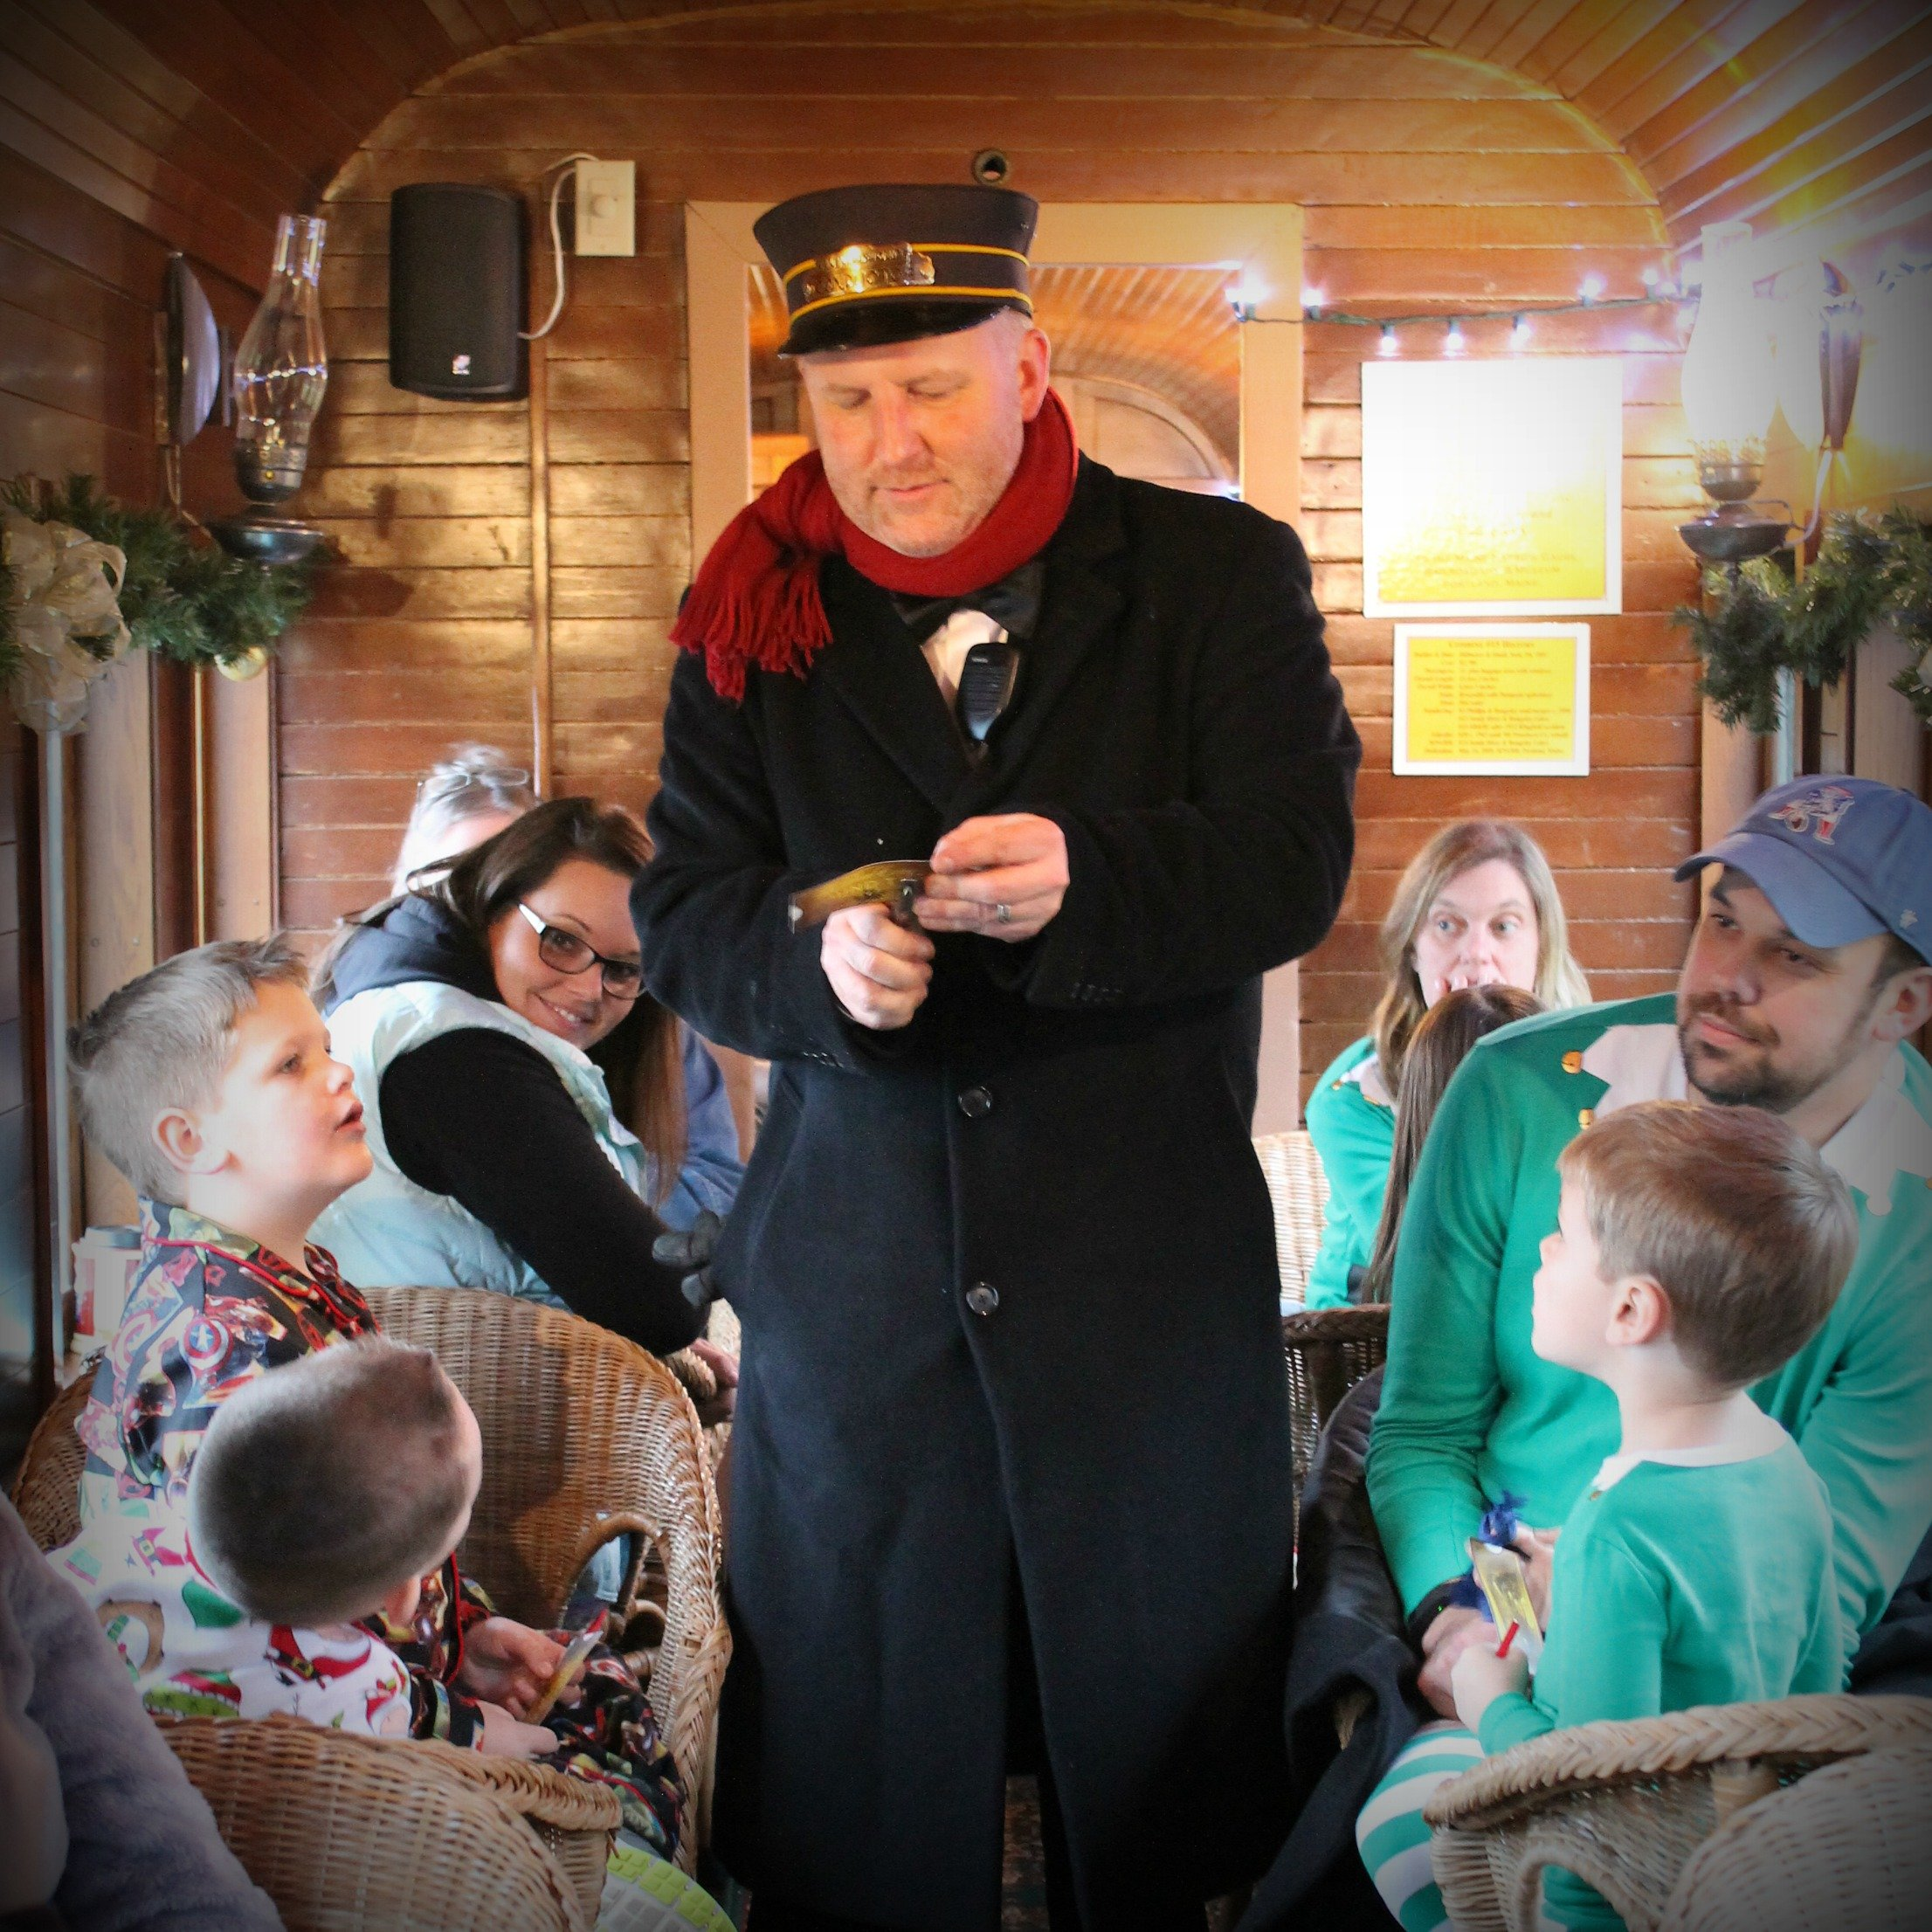 Conductor Wes Heinz punches tickets during the annual Polar Express™ holiday train ride.